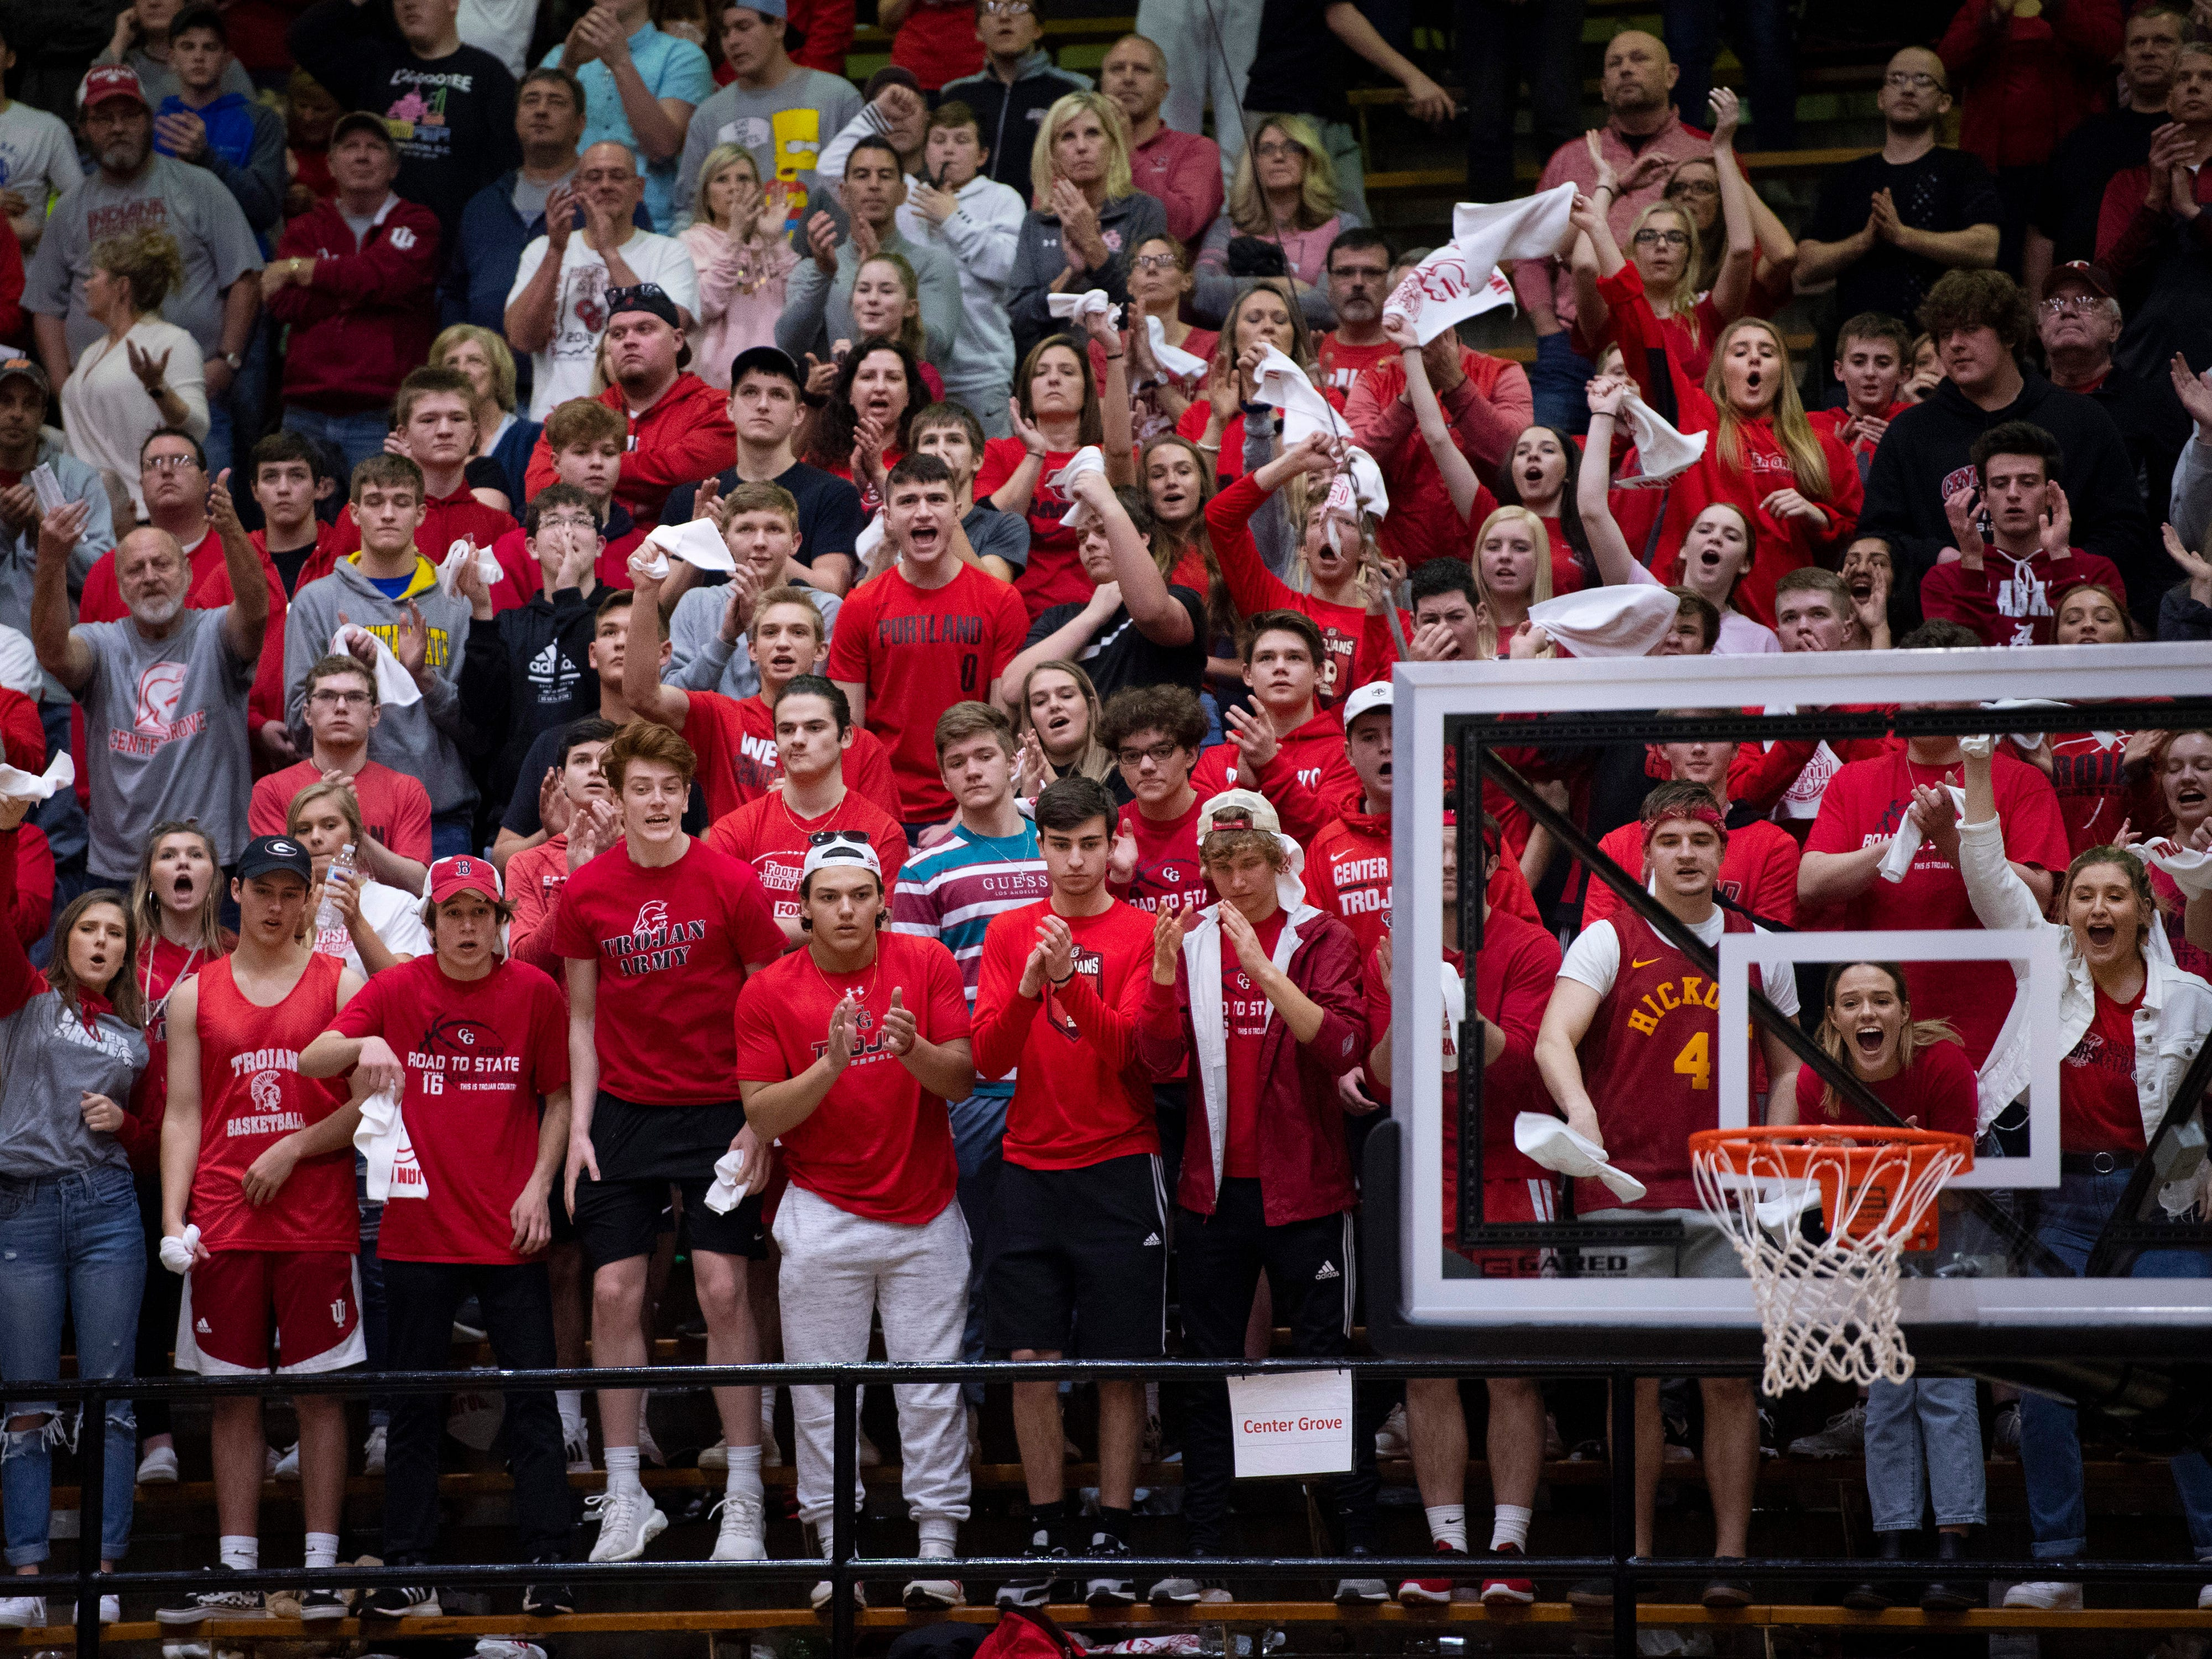 Central Grove's student section celebrates their team's comeback against Ben Davis during the 4A Boys Indiana Semi-State Basketball Tournament at the Hatchet House in Washington, Ind., Saturday afternoon. They were down 15 points with about six minutes to go and eventually cut the lead down to five before eventually losing.